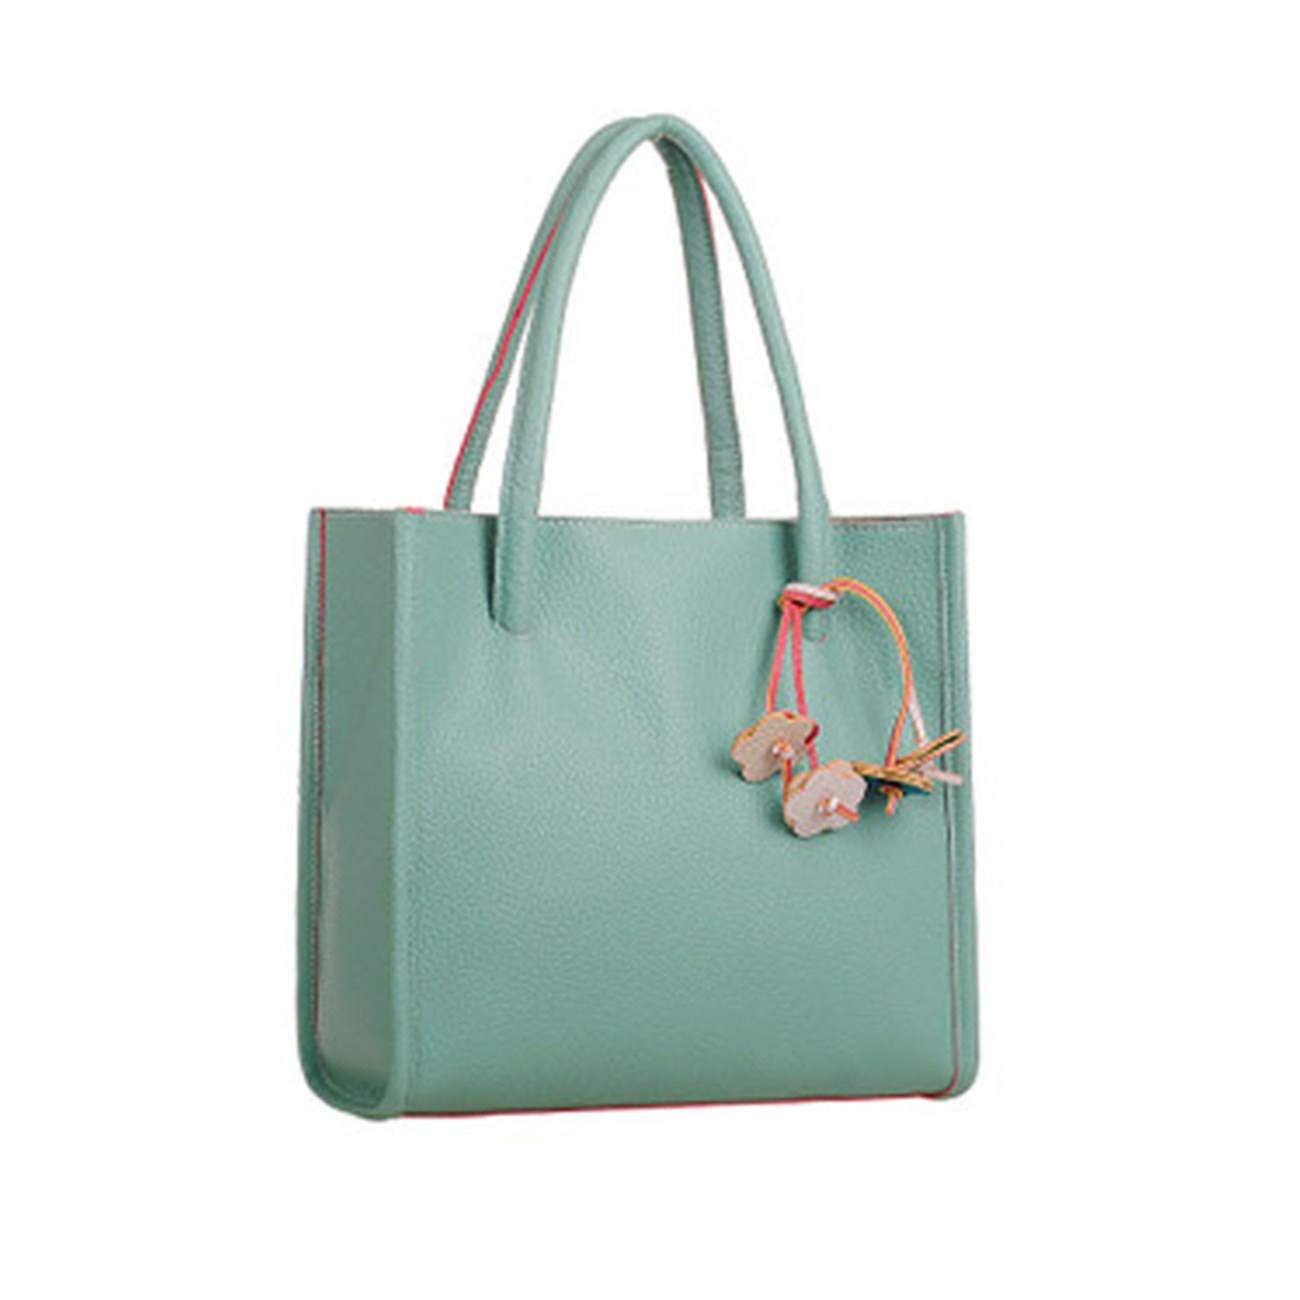 Big Sale! Fashion Elegant Girls Handbags PU Leather Shoulder Bag Clutches Candy Color Flowers Women Totes Purse (Green) by Challyhope (Image #1)